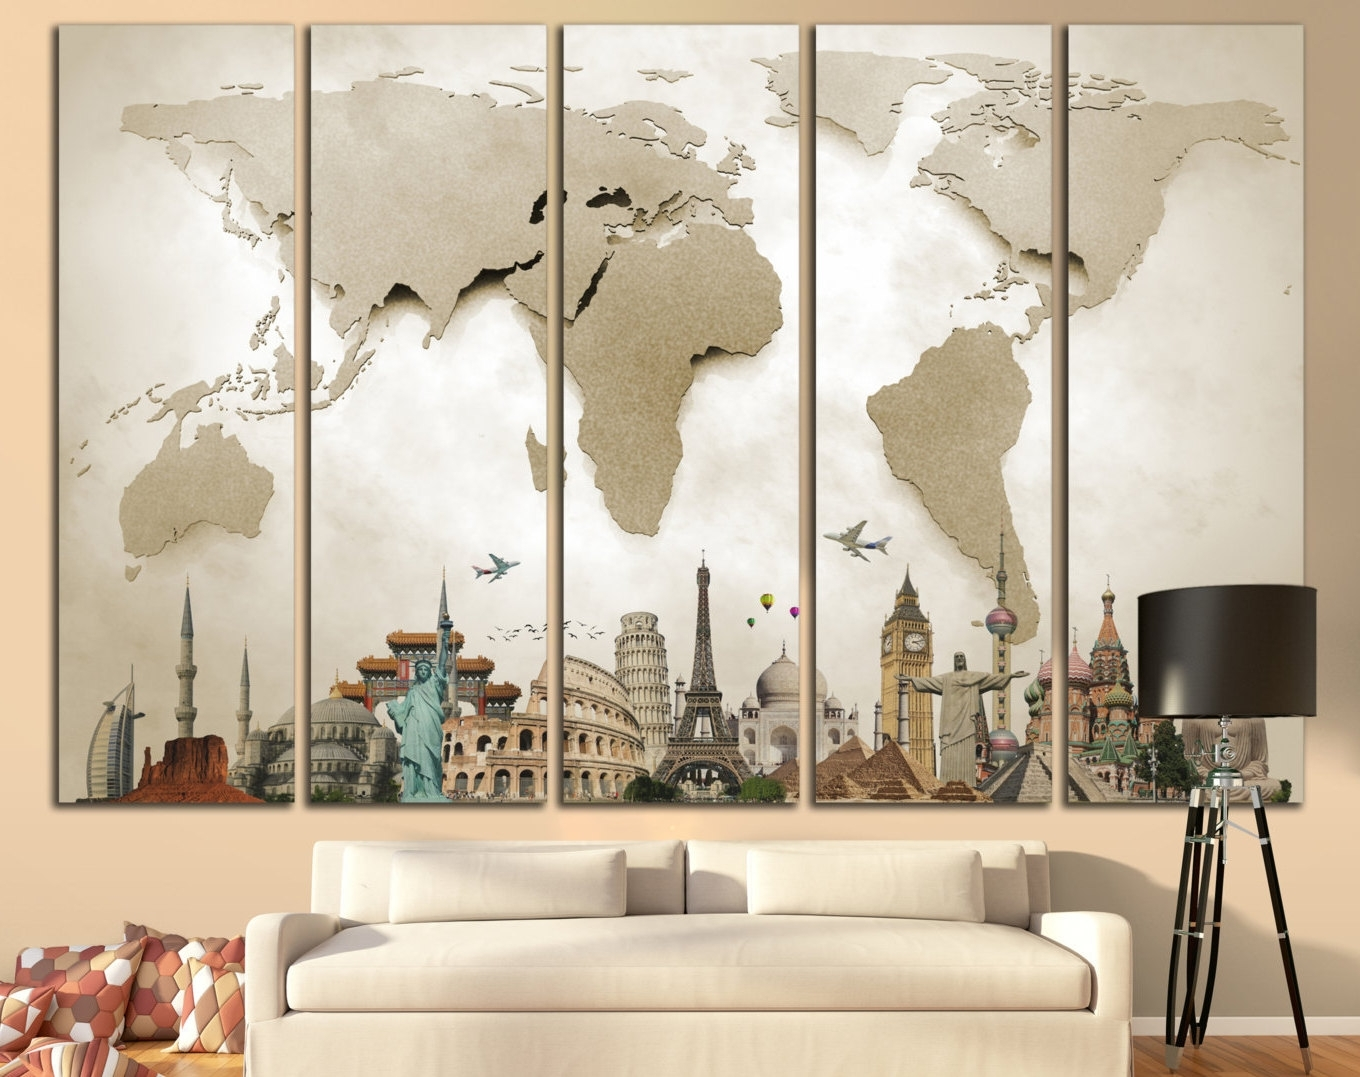 Big Cheap Wall Art Within Most Recent Wall Art Designs: Large Wall Art World Map Large Print Beige World (View 6 of 15)